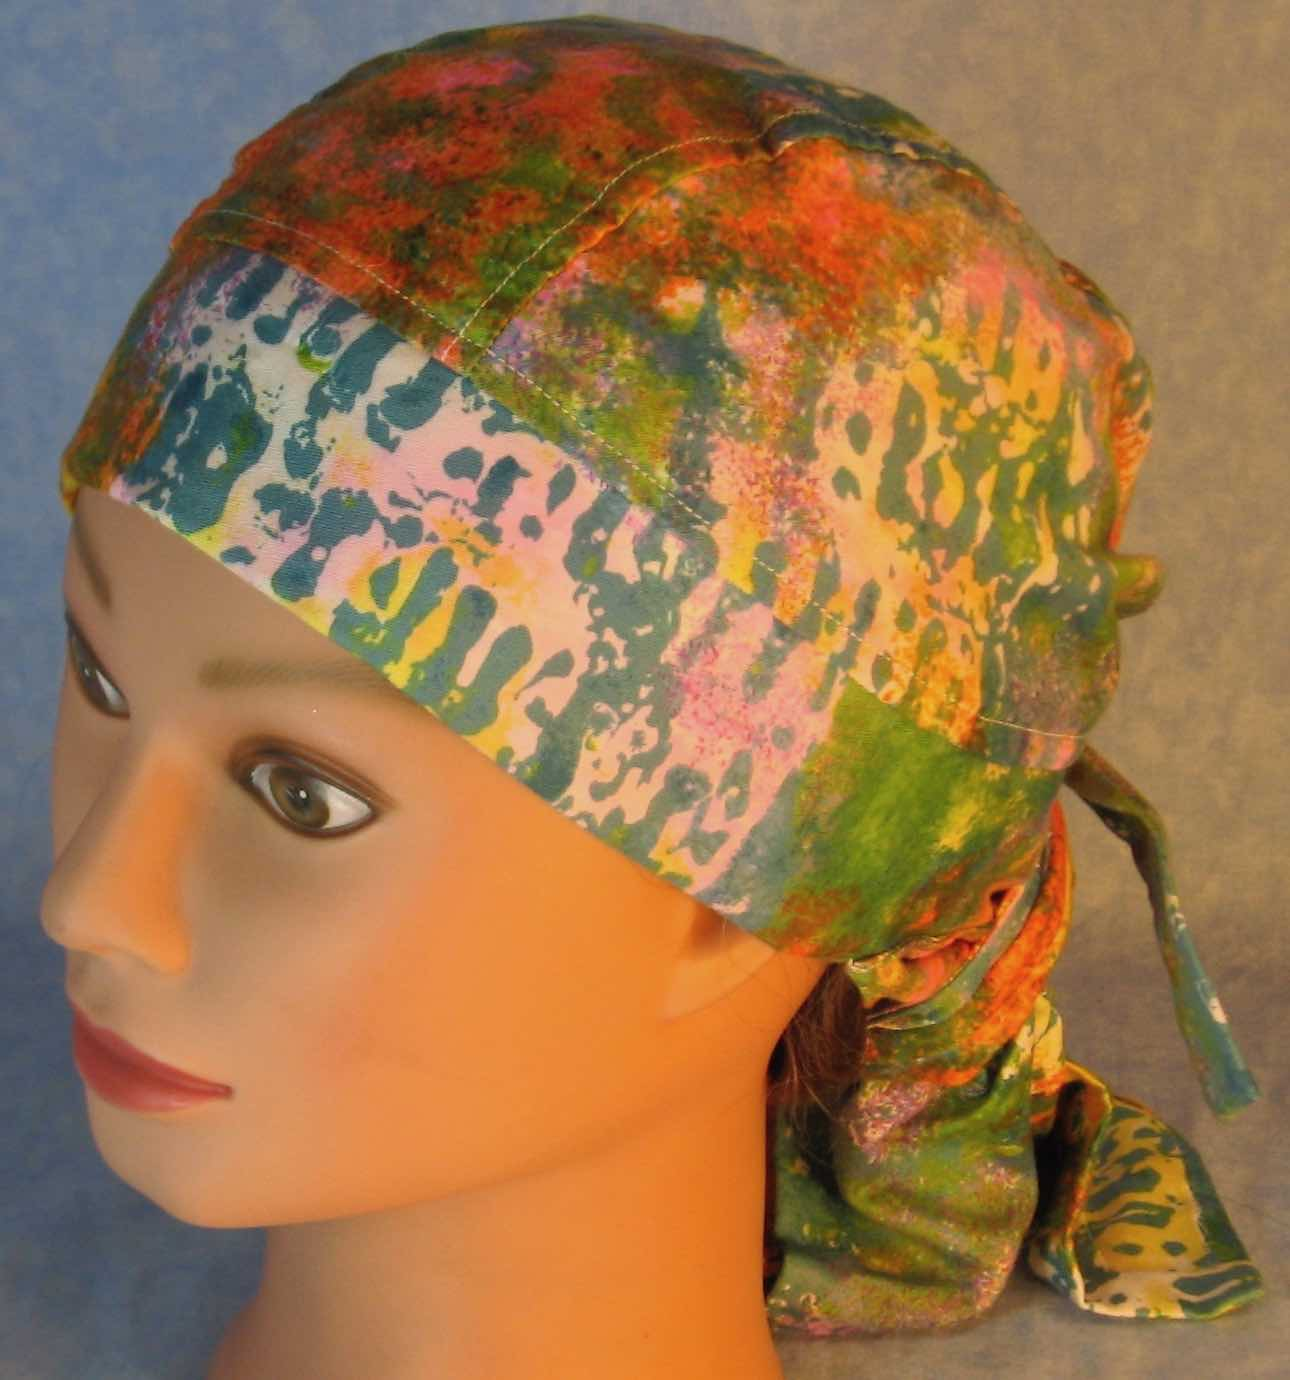 Hair Bag Do Rag in Pastel Sponge Blue Orange Green - Adult 1XL-3XL